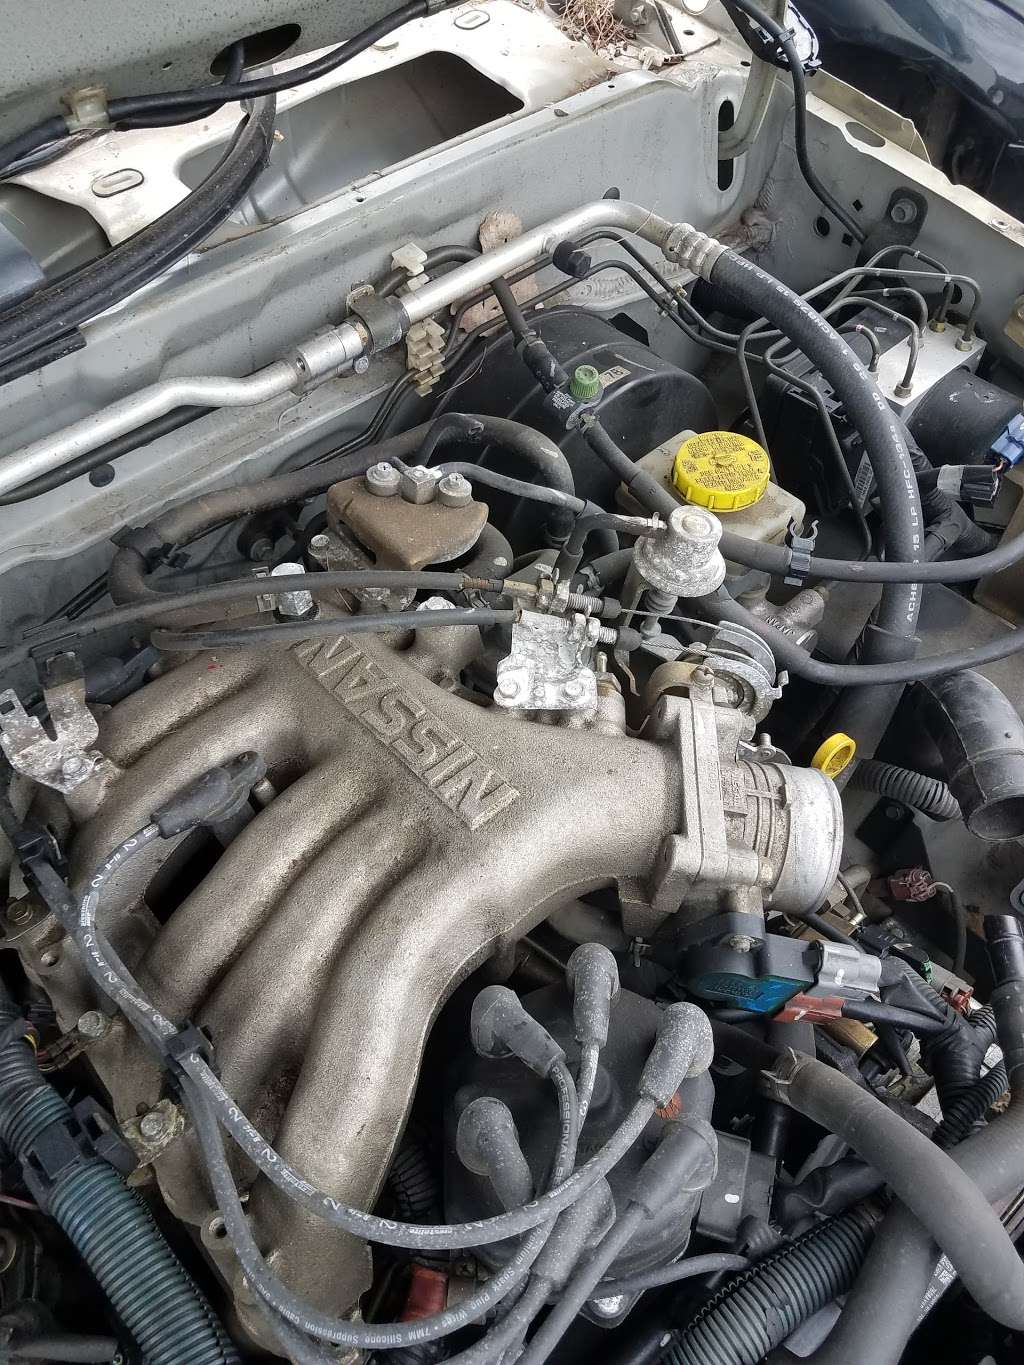 Cooks Auto Parts - car repair  | Photo 1 of 5 | Address: 501 Avon Ave, Plainfield, IN 46168, USA | Phone: (317) 839-7220